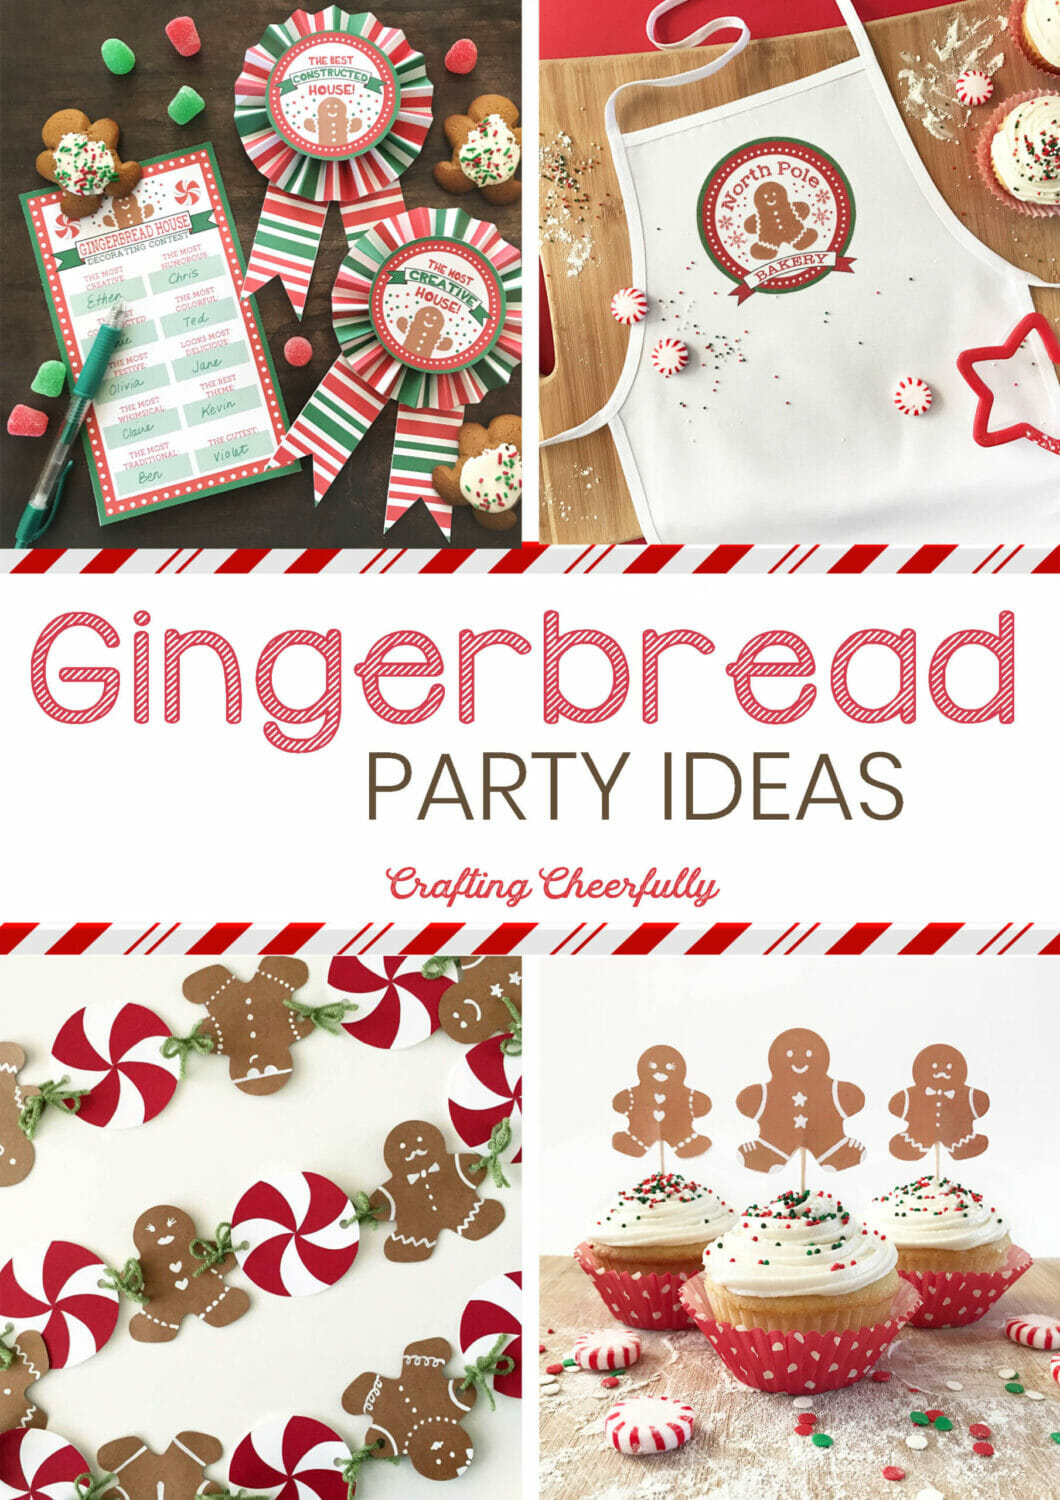 Gingerbread Party Ideas